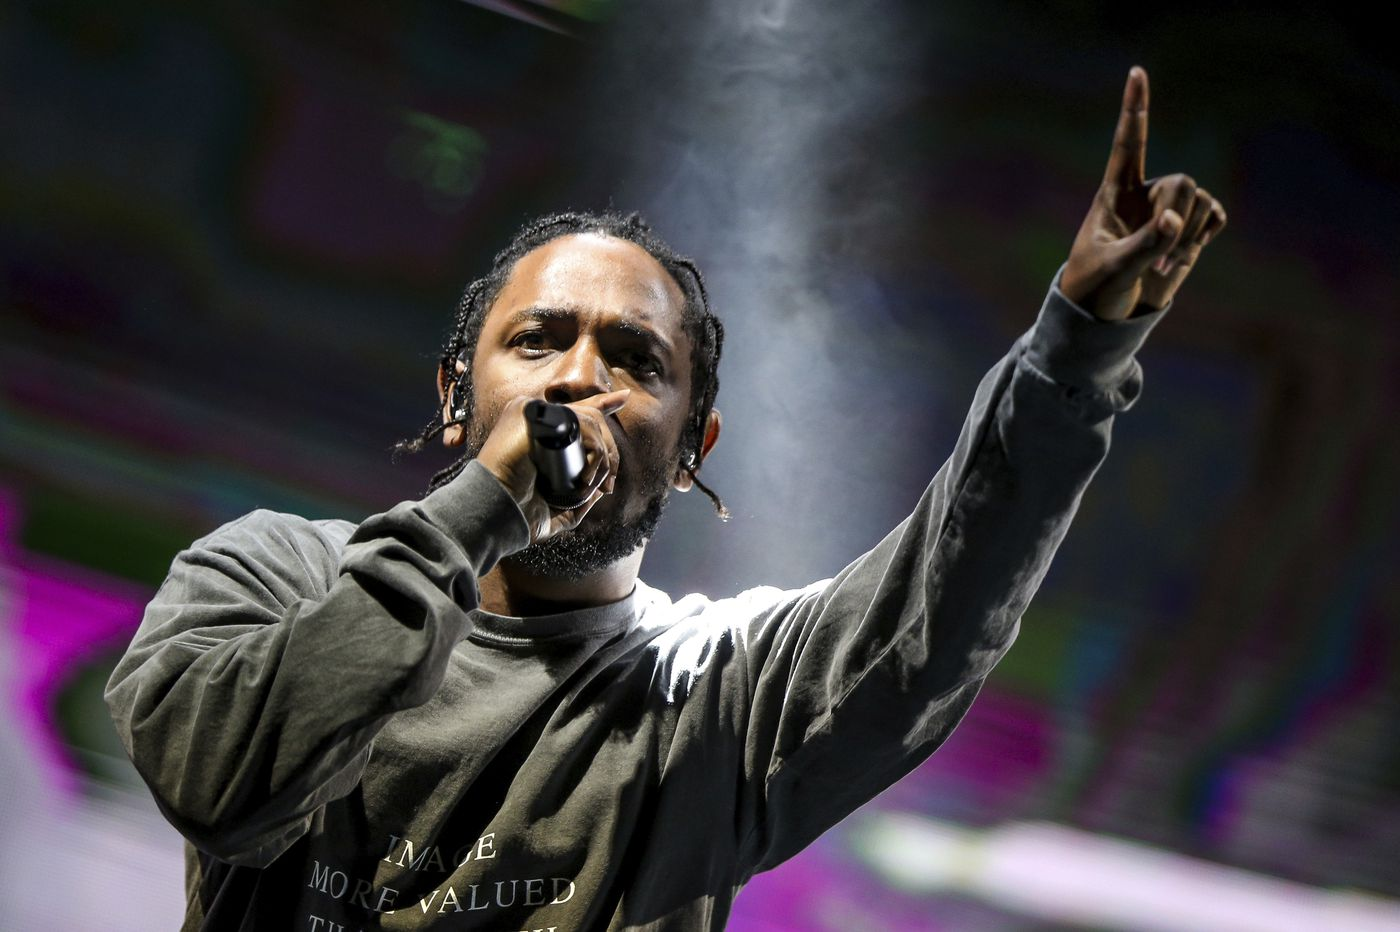 Kendrick Lamar, Diplo, Nicki Minaj and 9 other acts not to miss at Made in America